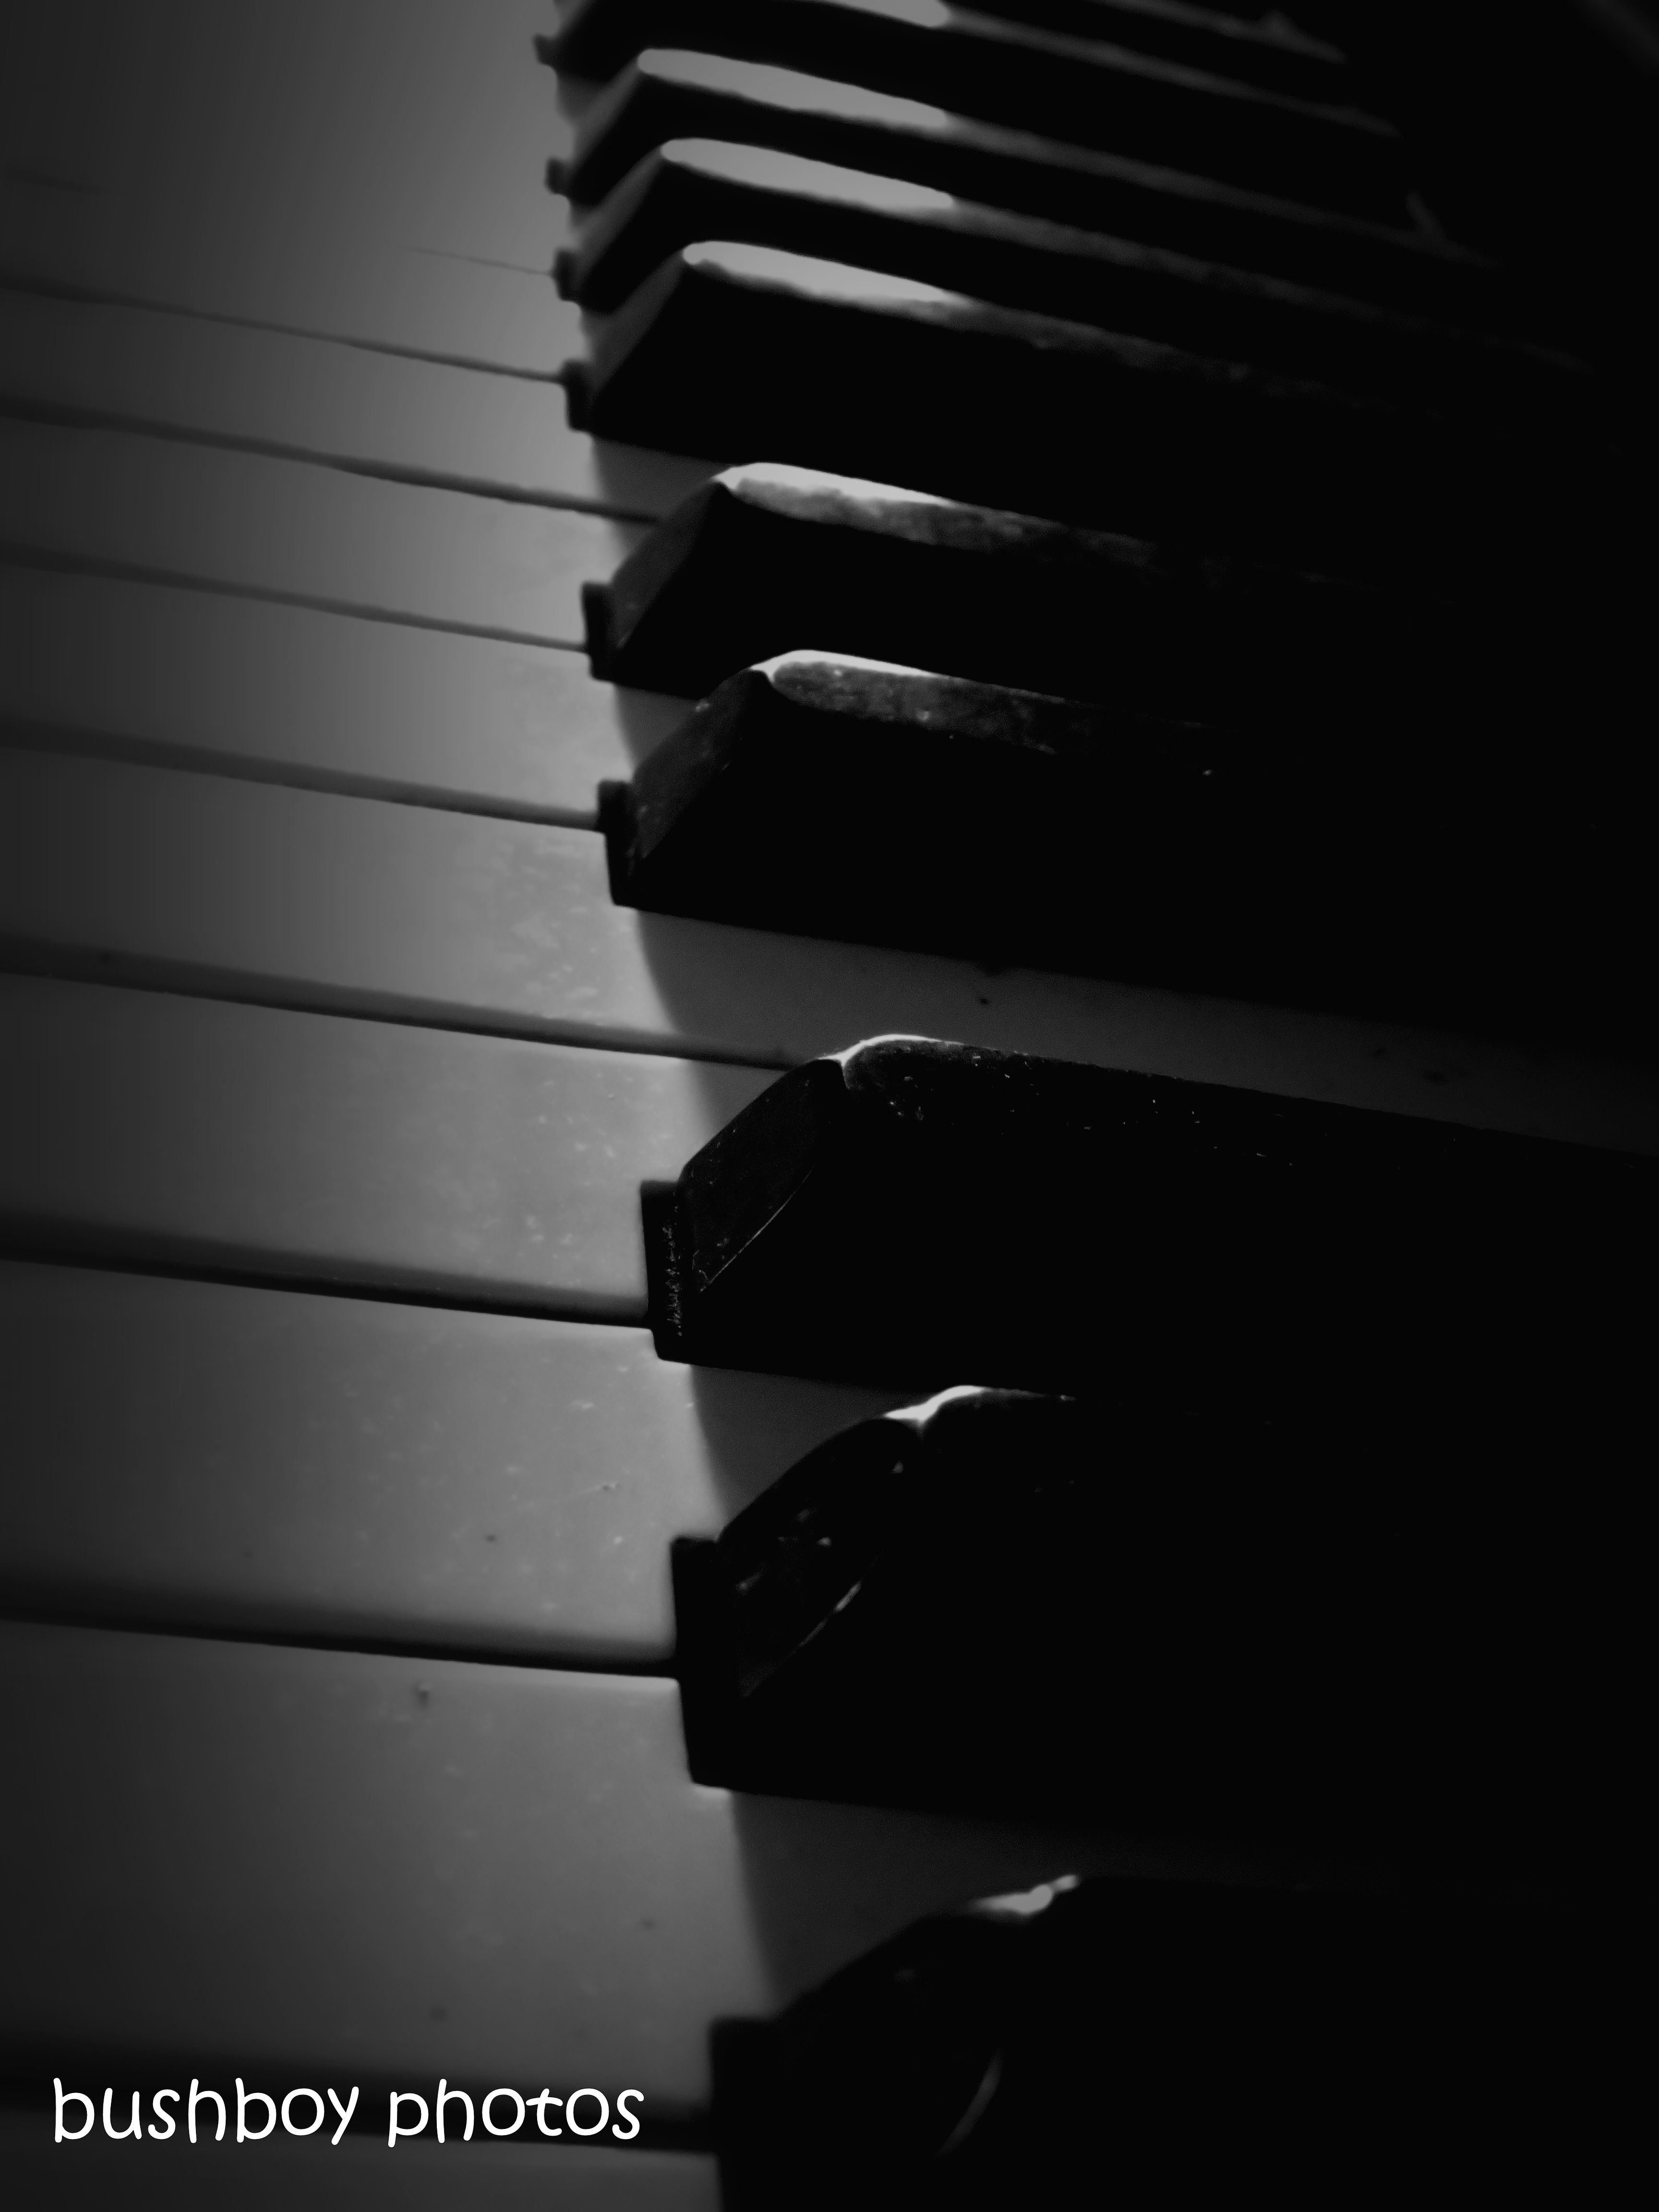 190111_blog_challenge_blackandwhite_music_related_piano_keys2